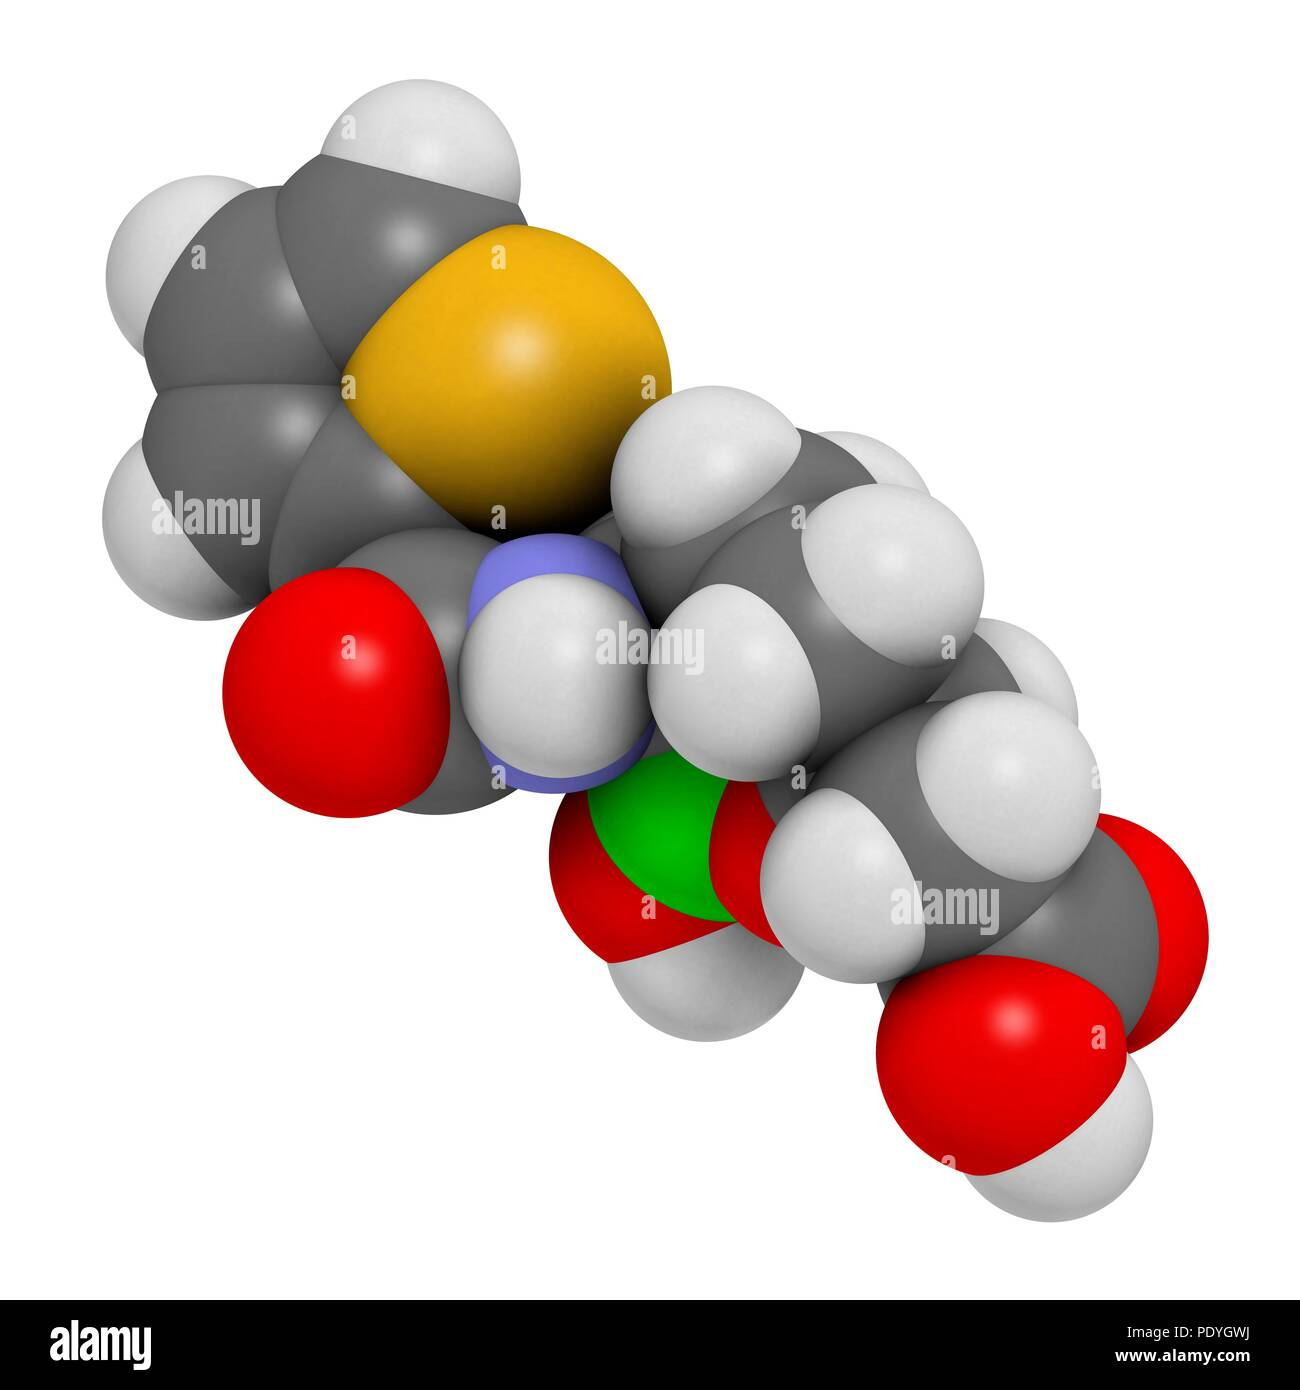 Boron Atomic Structure Stock Photos 3d Oxygen Atom Diagram This Is Our First Vaborbactam Drug Molecule Beta Lactamase Inhibitor Co Administered With Meropenem To Block Degradation